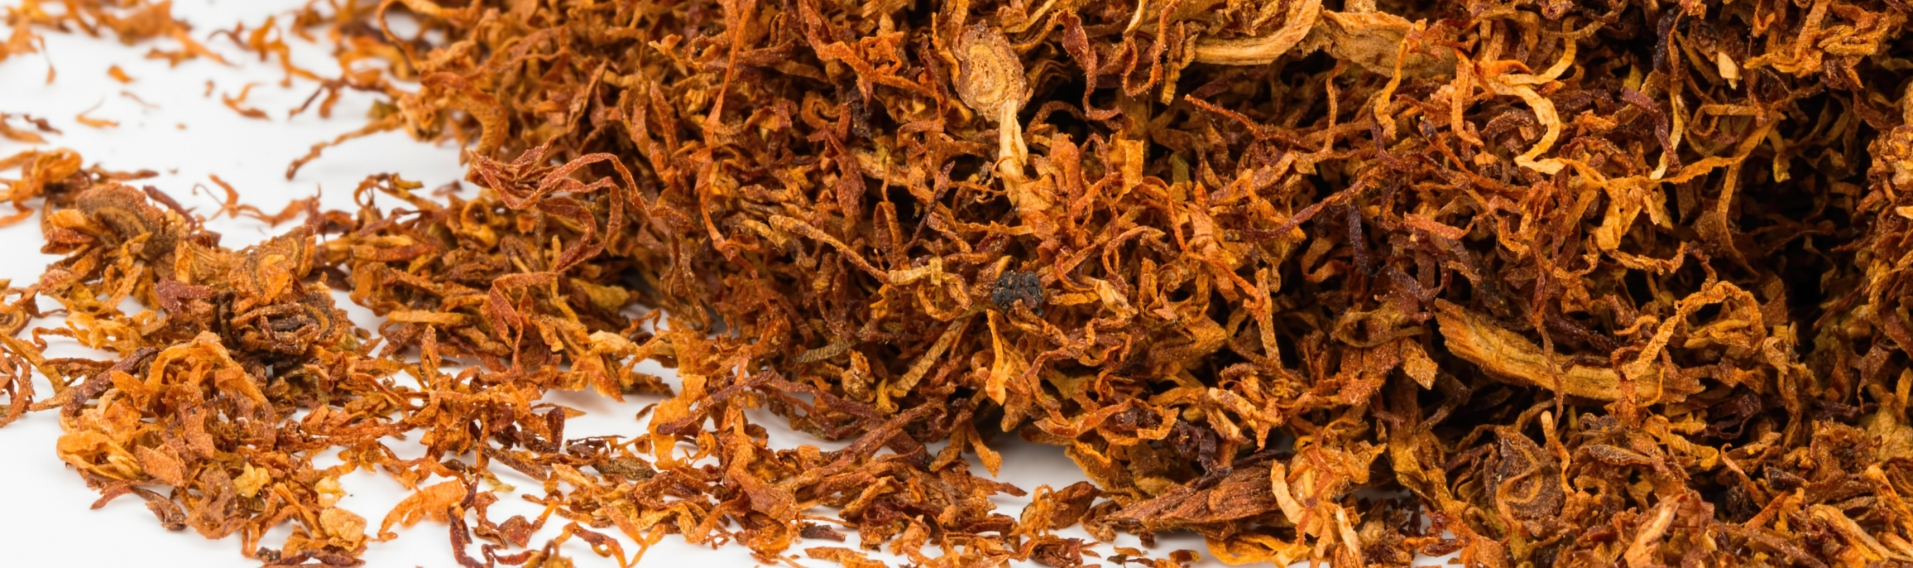 Close-up of humidity controlled dried tobacco